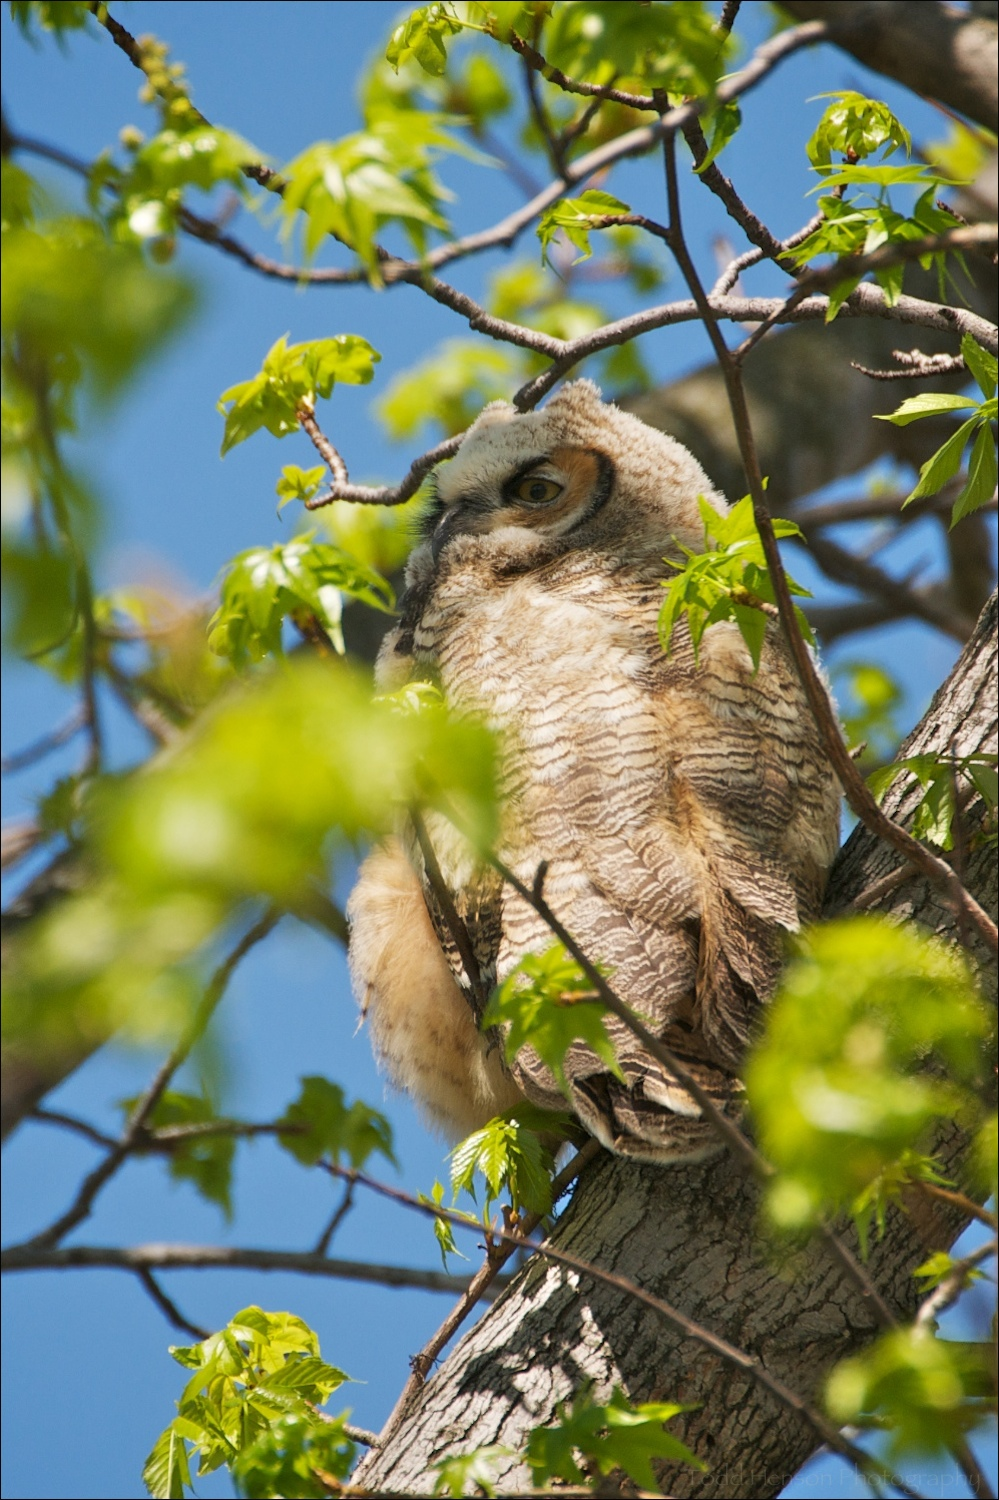 Young Great Horned Owl, recently fledged. April 11, 2010